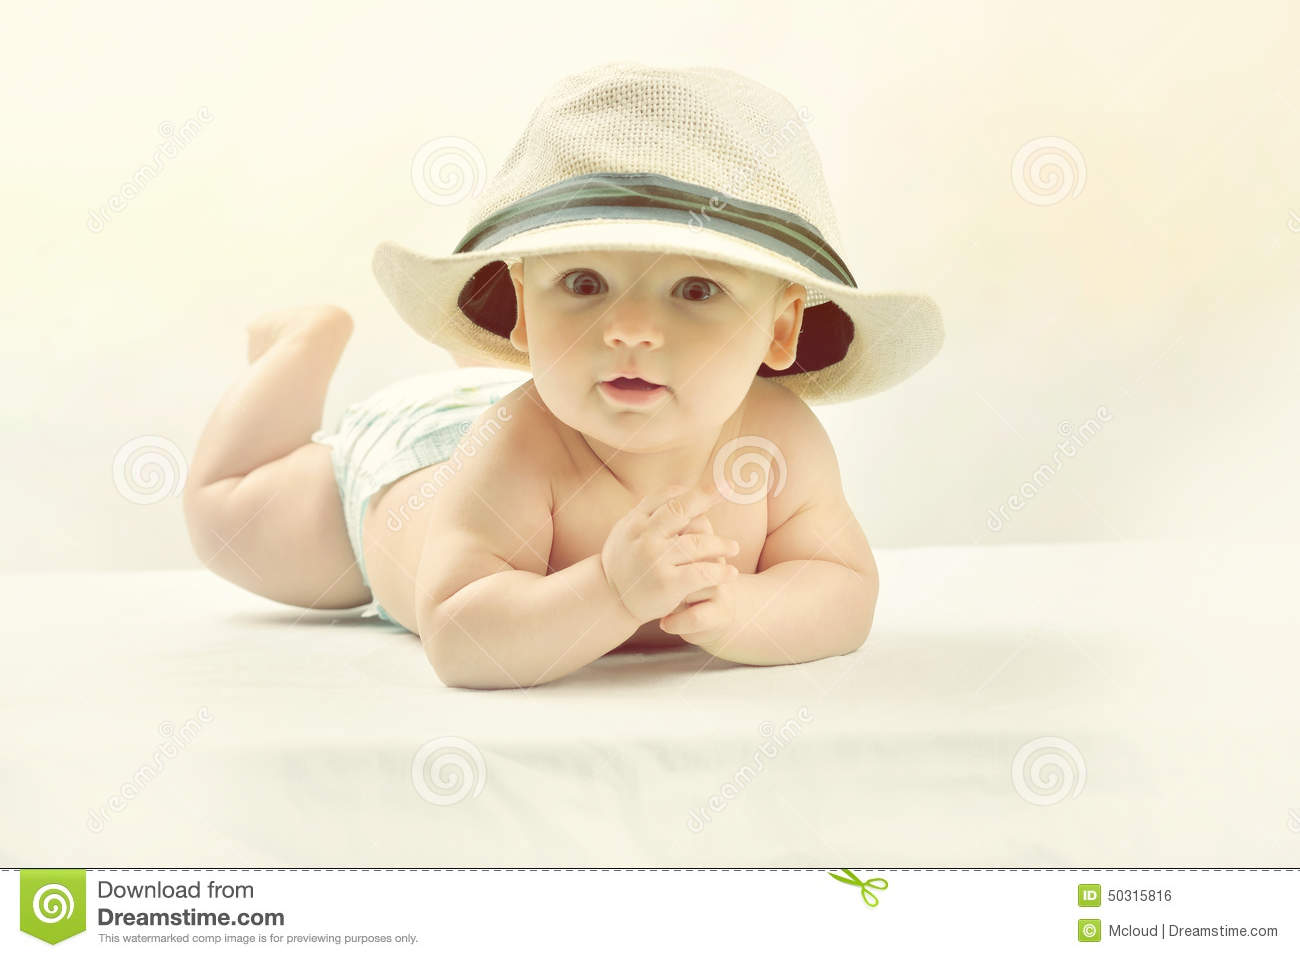 A Cute Little Baby In A White Hat. Stock Photo - Image of closeup ... d0a6545a48a